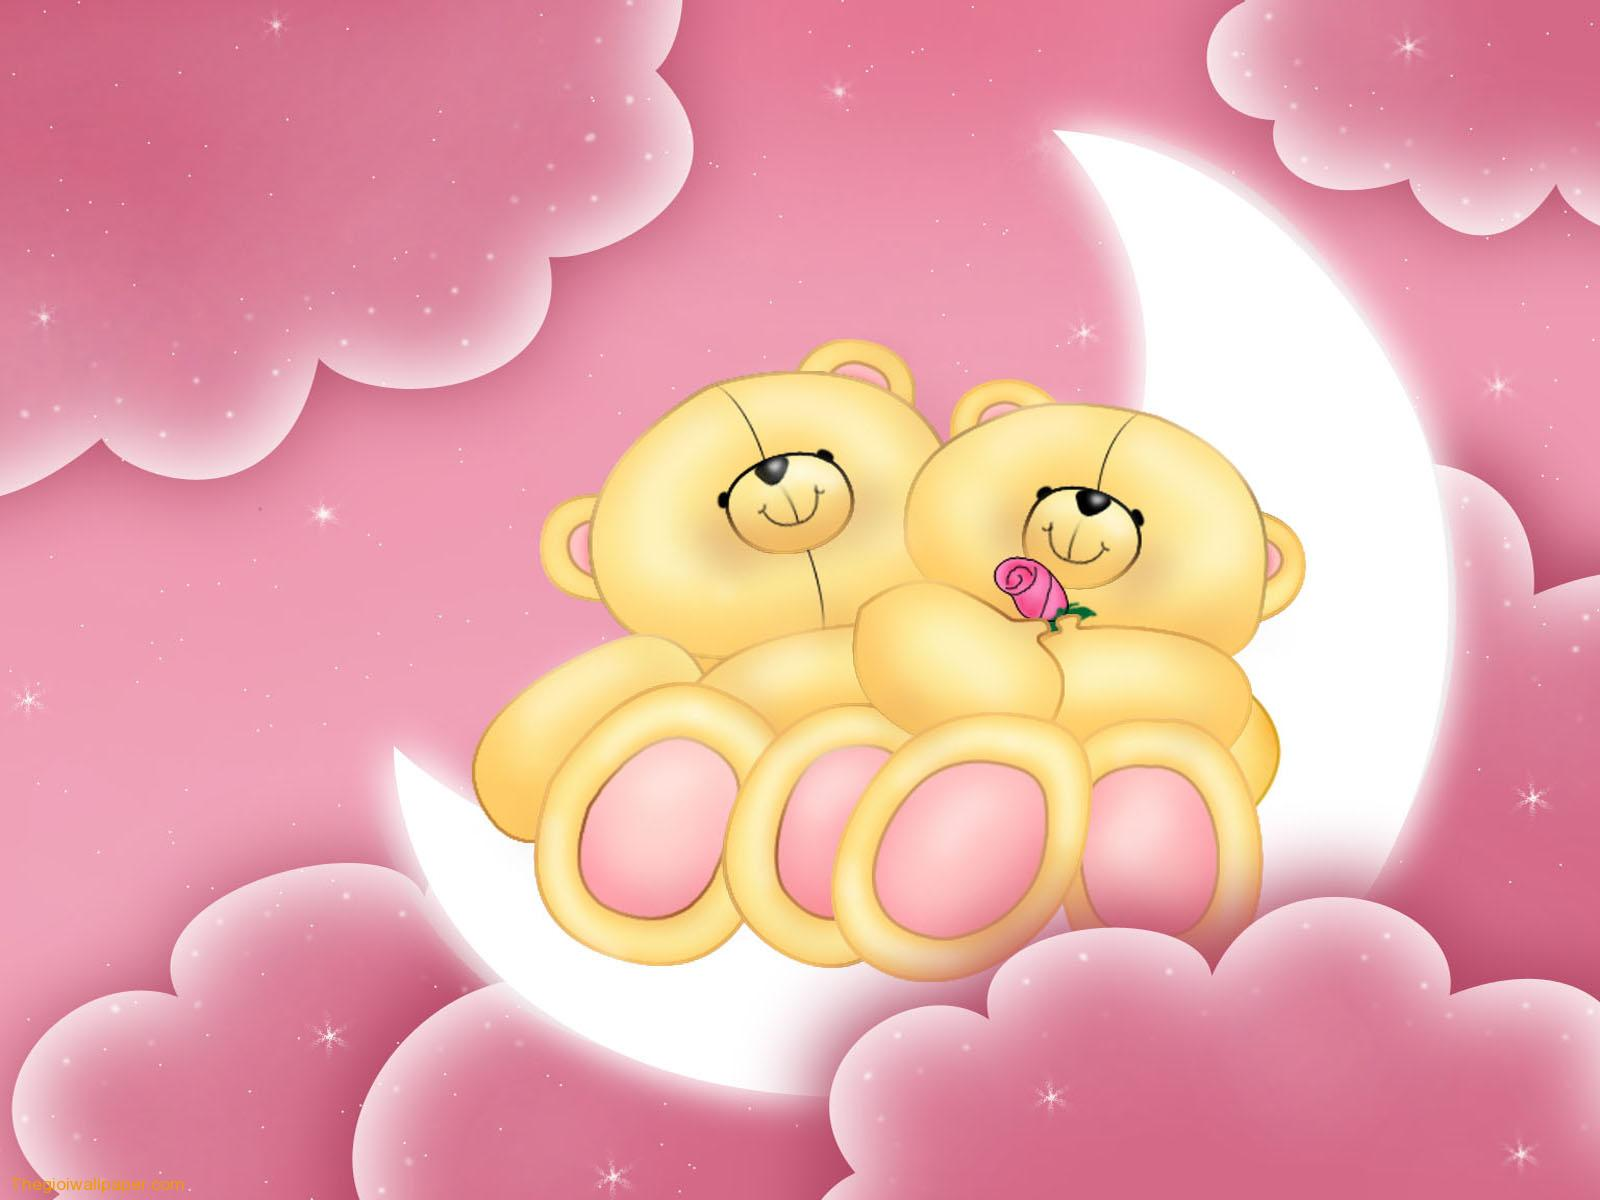 Collection of Cute Wallpapers Desktop on HDWallpapers